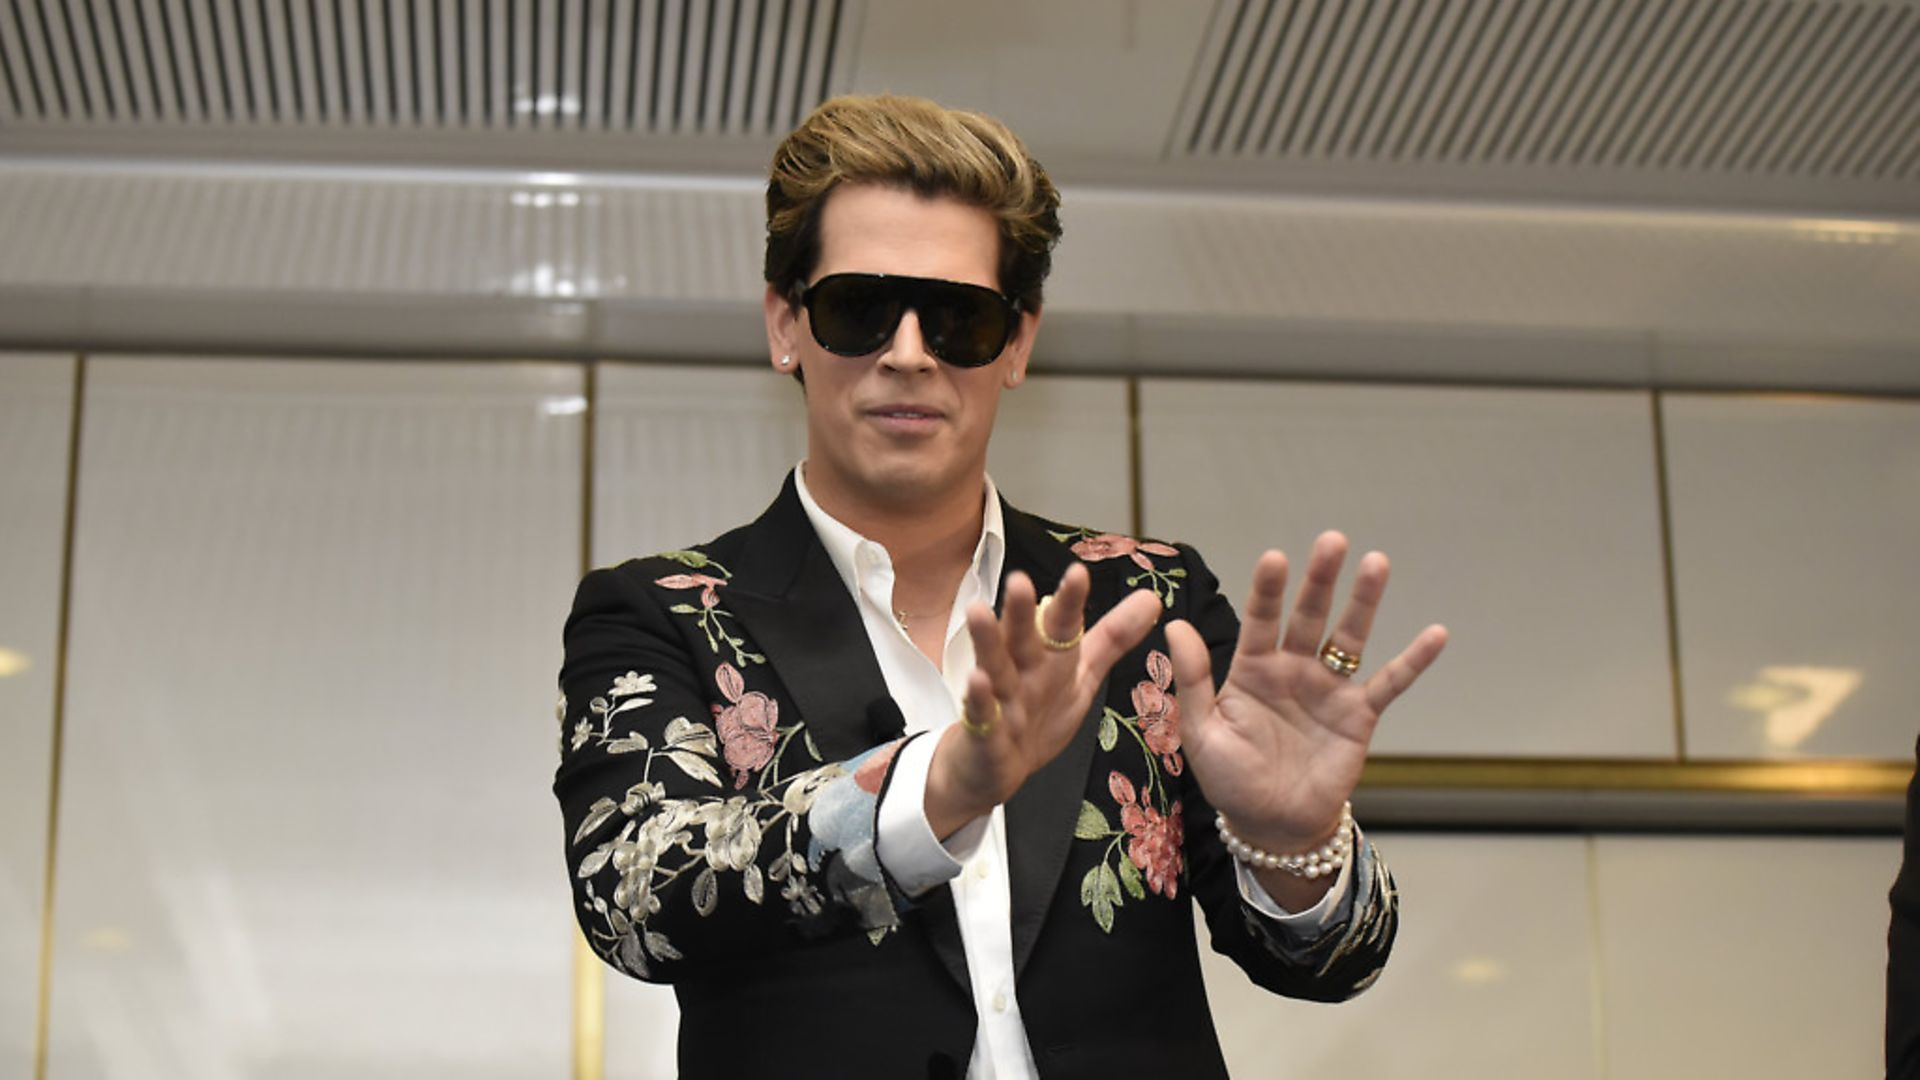 Milo Yiannopoulos speaking at an event in Australia. Photo: Michael Masters/Getty Images - Credit: Getty Images